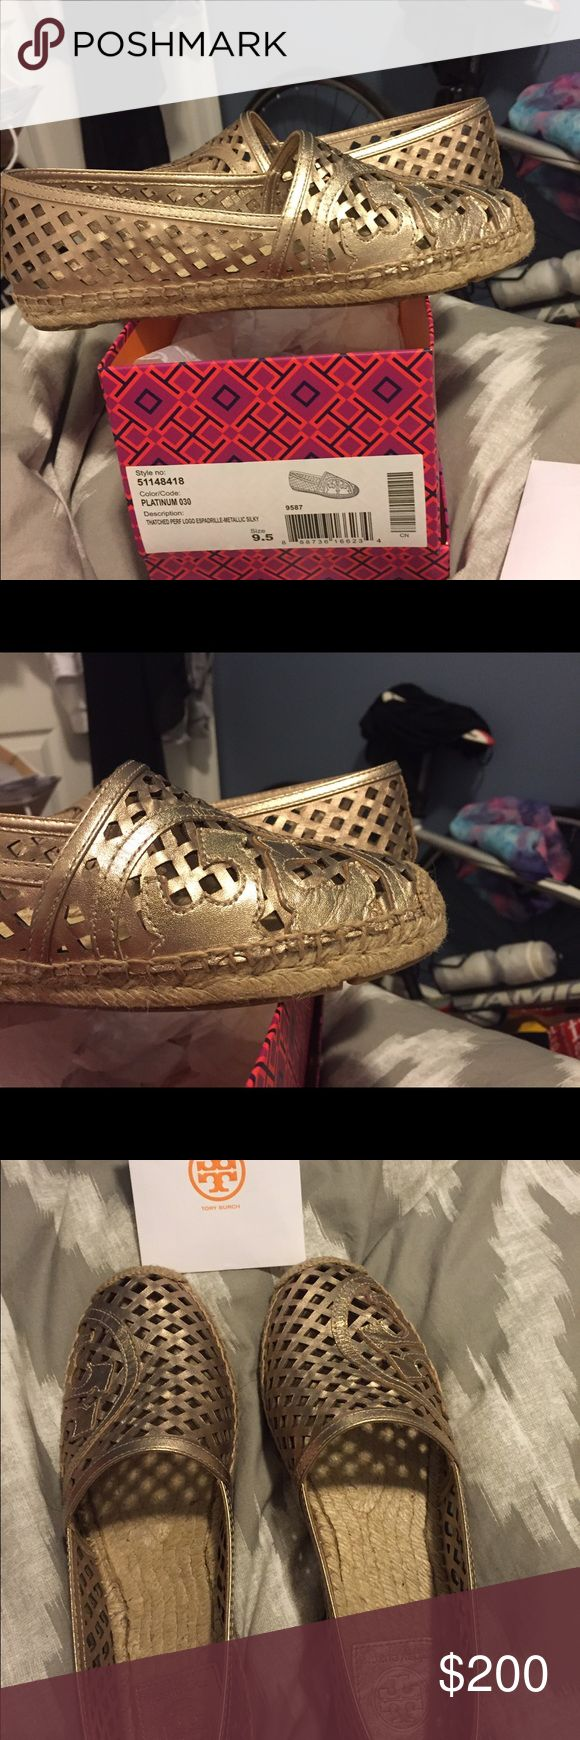 Tory Birch Gold Espadrilles Amazing gold espadrilles for Tory 2014. Size 9.5, brand new! Tory Burch Shoes Espadrilles